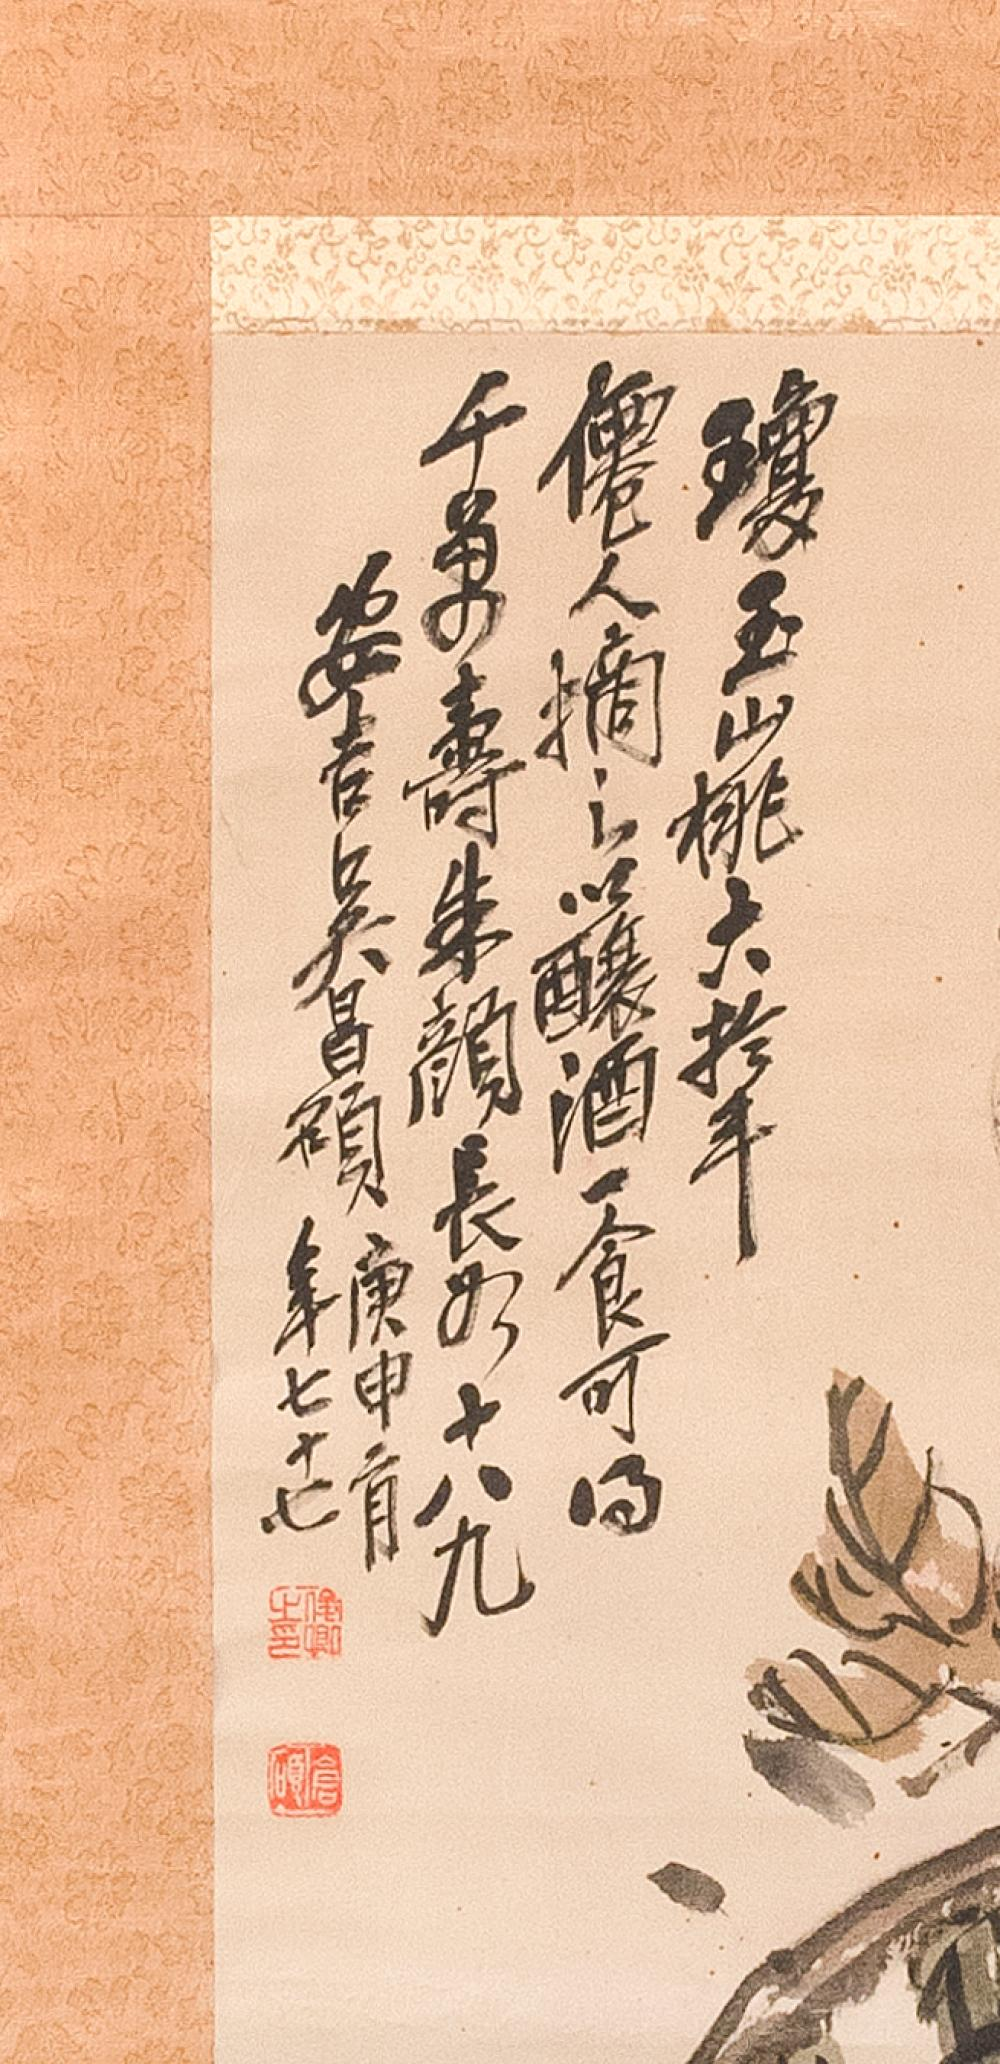 Lot 1054: CHINESE SCROLL PAINTING ON SILK Attributed to Wu Changshuo. Depicting fruit and vine. Marked with four seals and extensive calligrap...